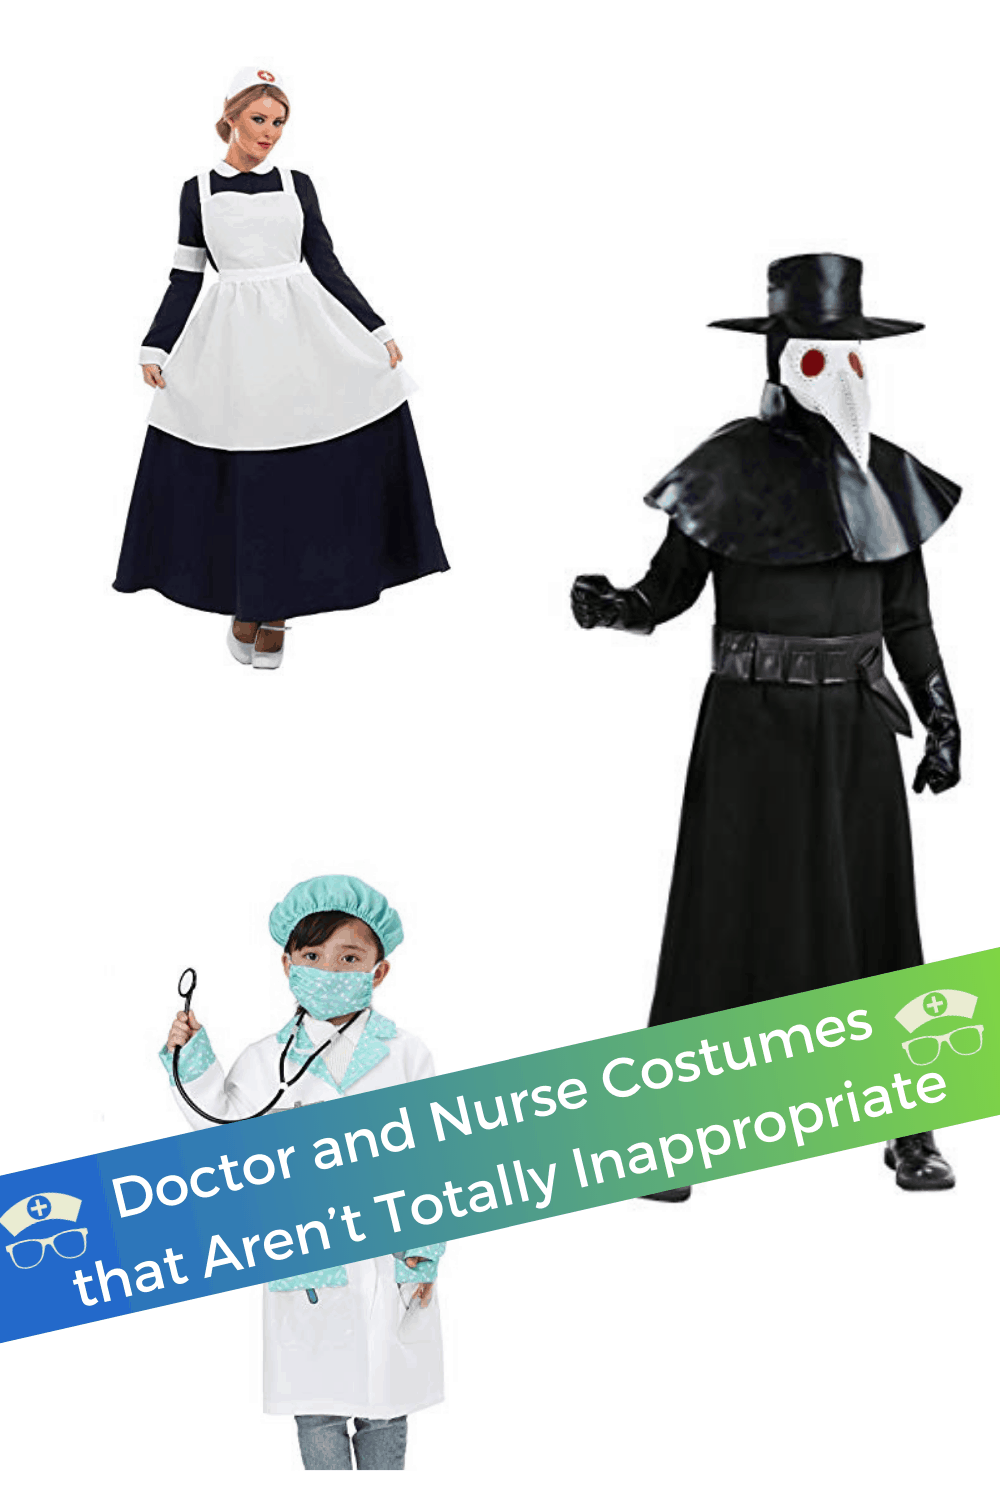 Doctor and Nurse Costumes that Aren't Totally Inappropriate. These doctor and nurse costumes are fun, creative, modest, and appropriate. Browse ideas for both adults and children. #thenerdynurse #nurse #nurses #doctor #Halloween #costume #nursecostume #doctorcostume